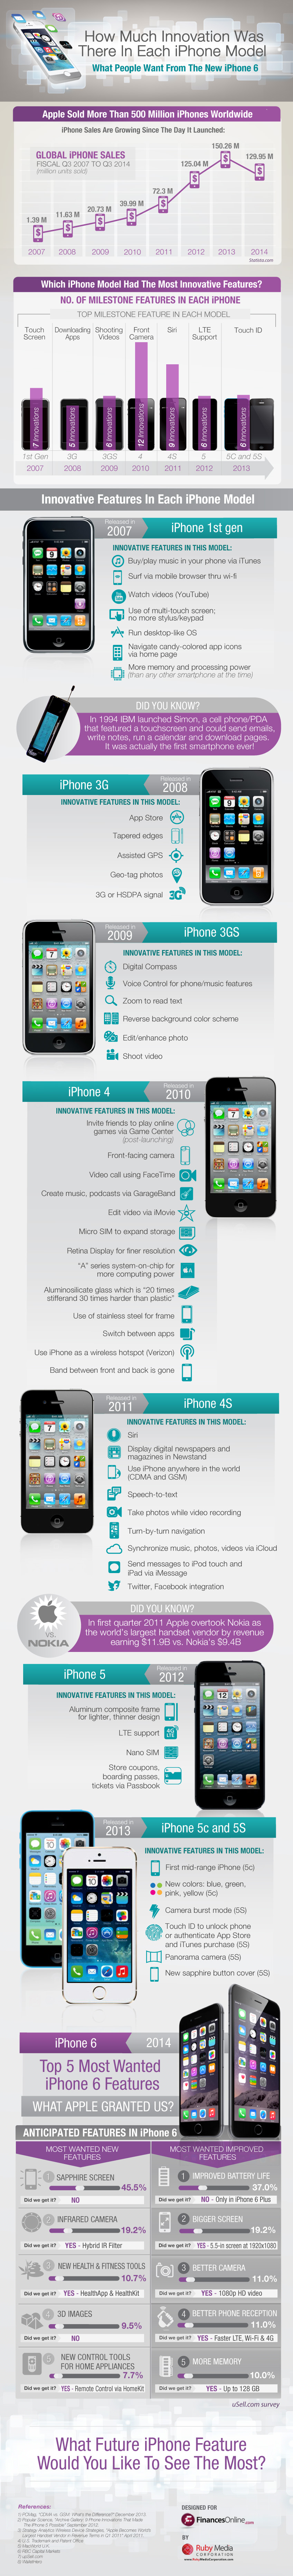 Comparison of New iPhone 6 Features: The Suprising Answer To The Most Demanded Feature In Apple's Device